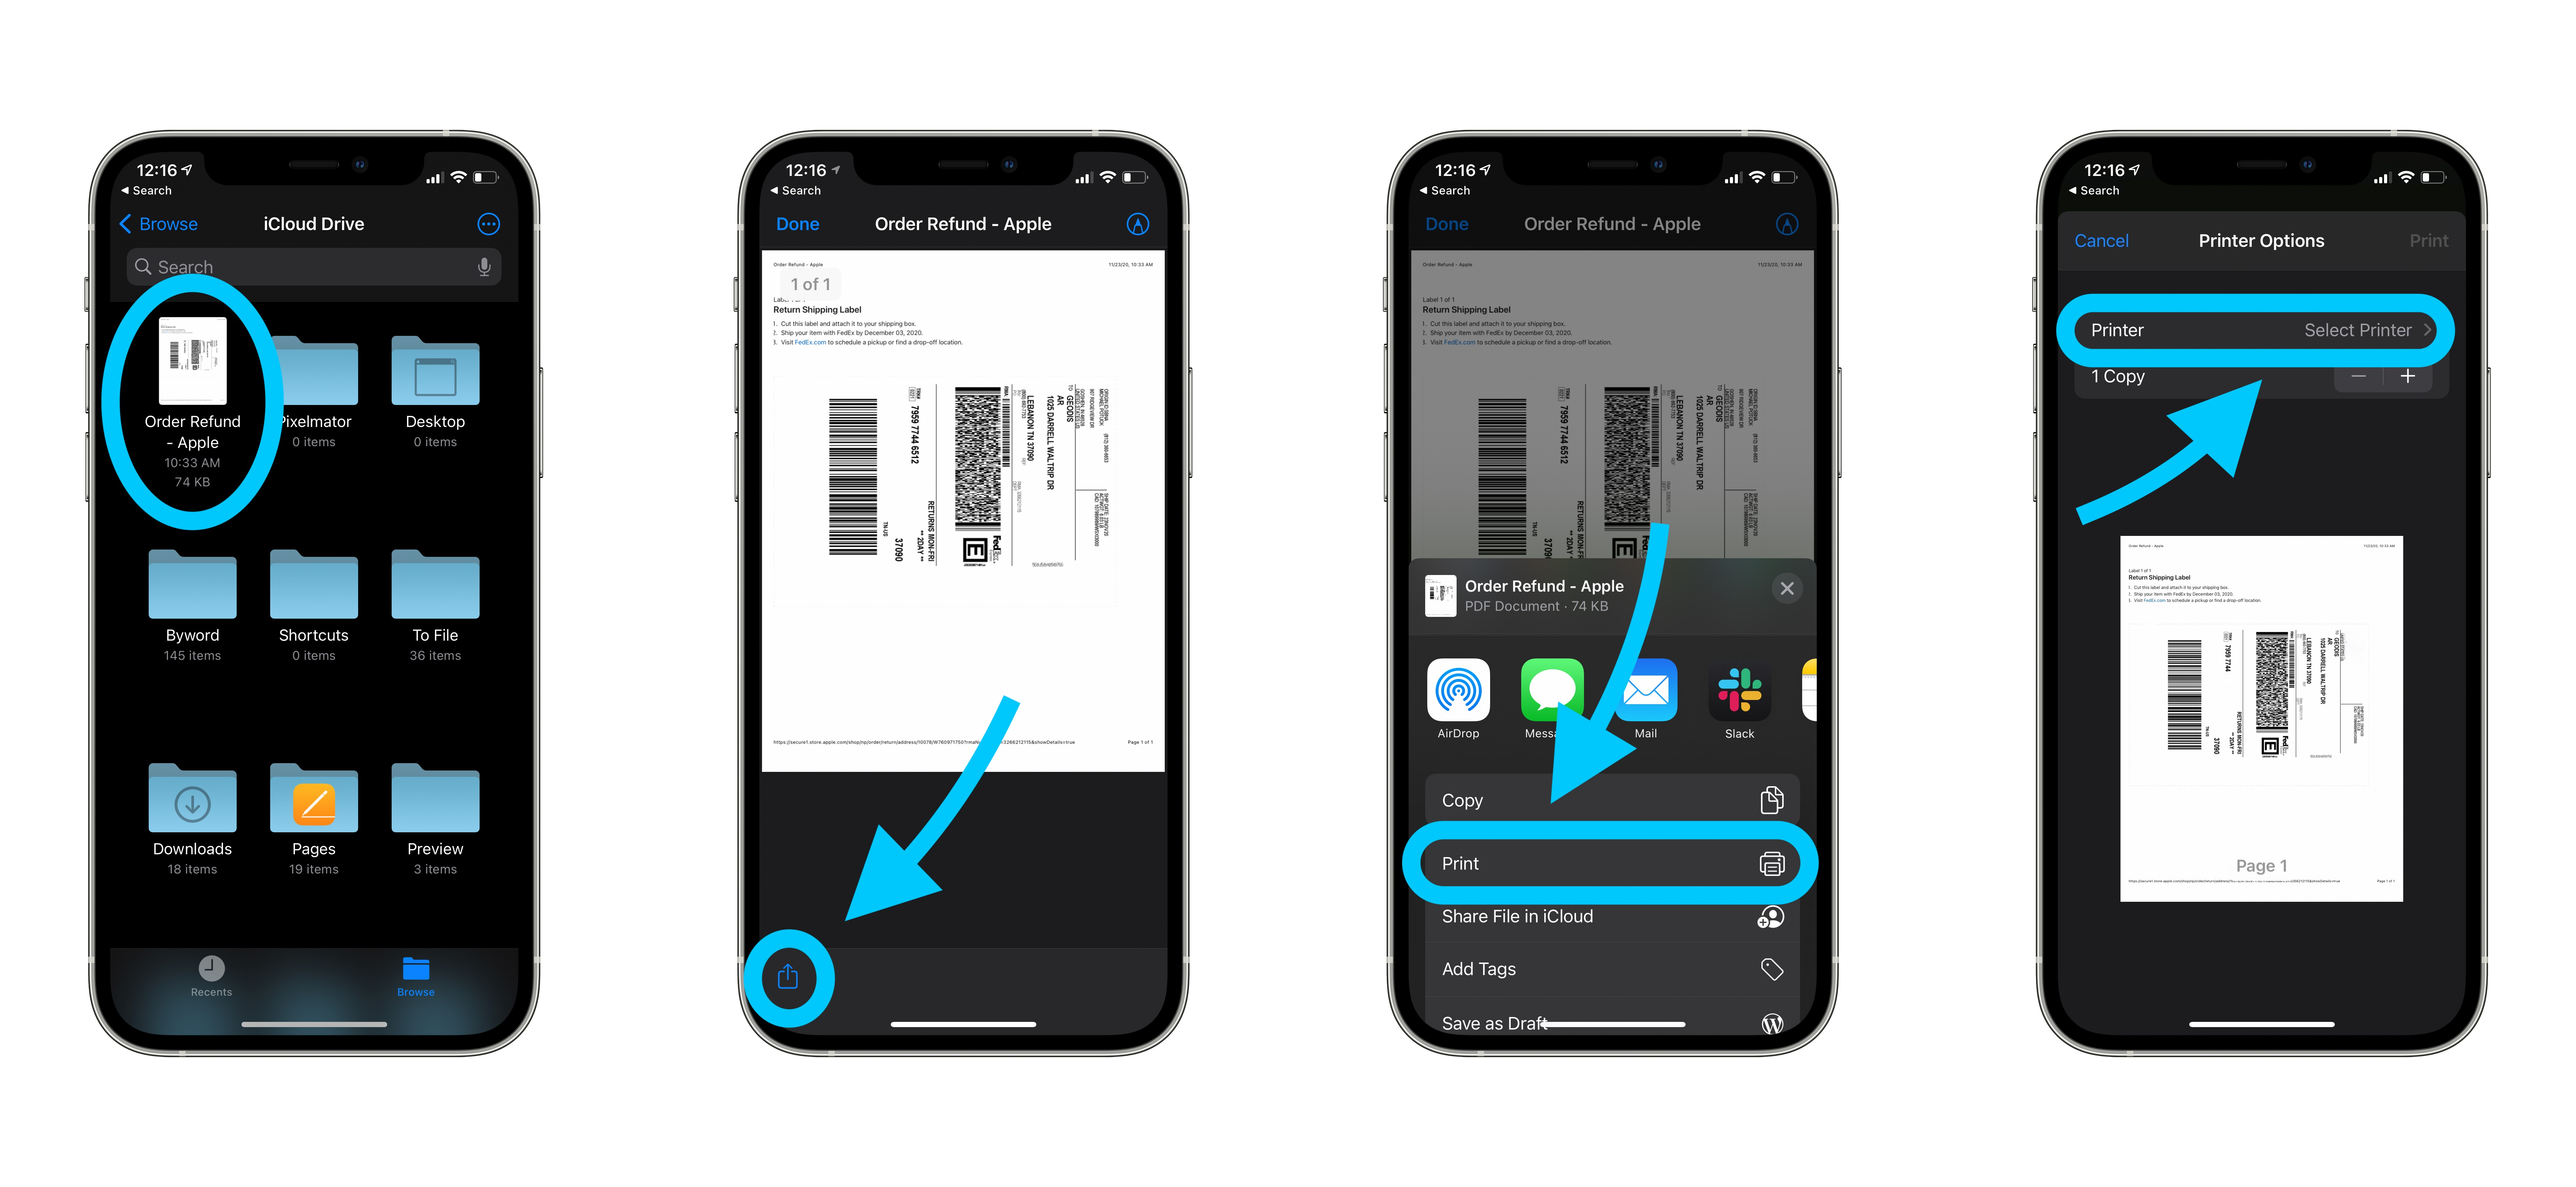 How to print from iPhone iPad with or without AirPrint walkthrough 1